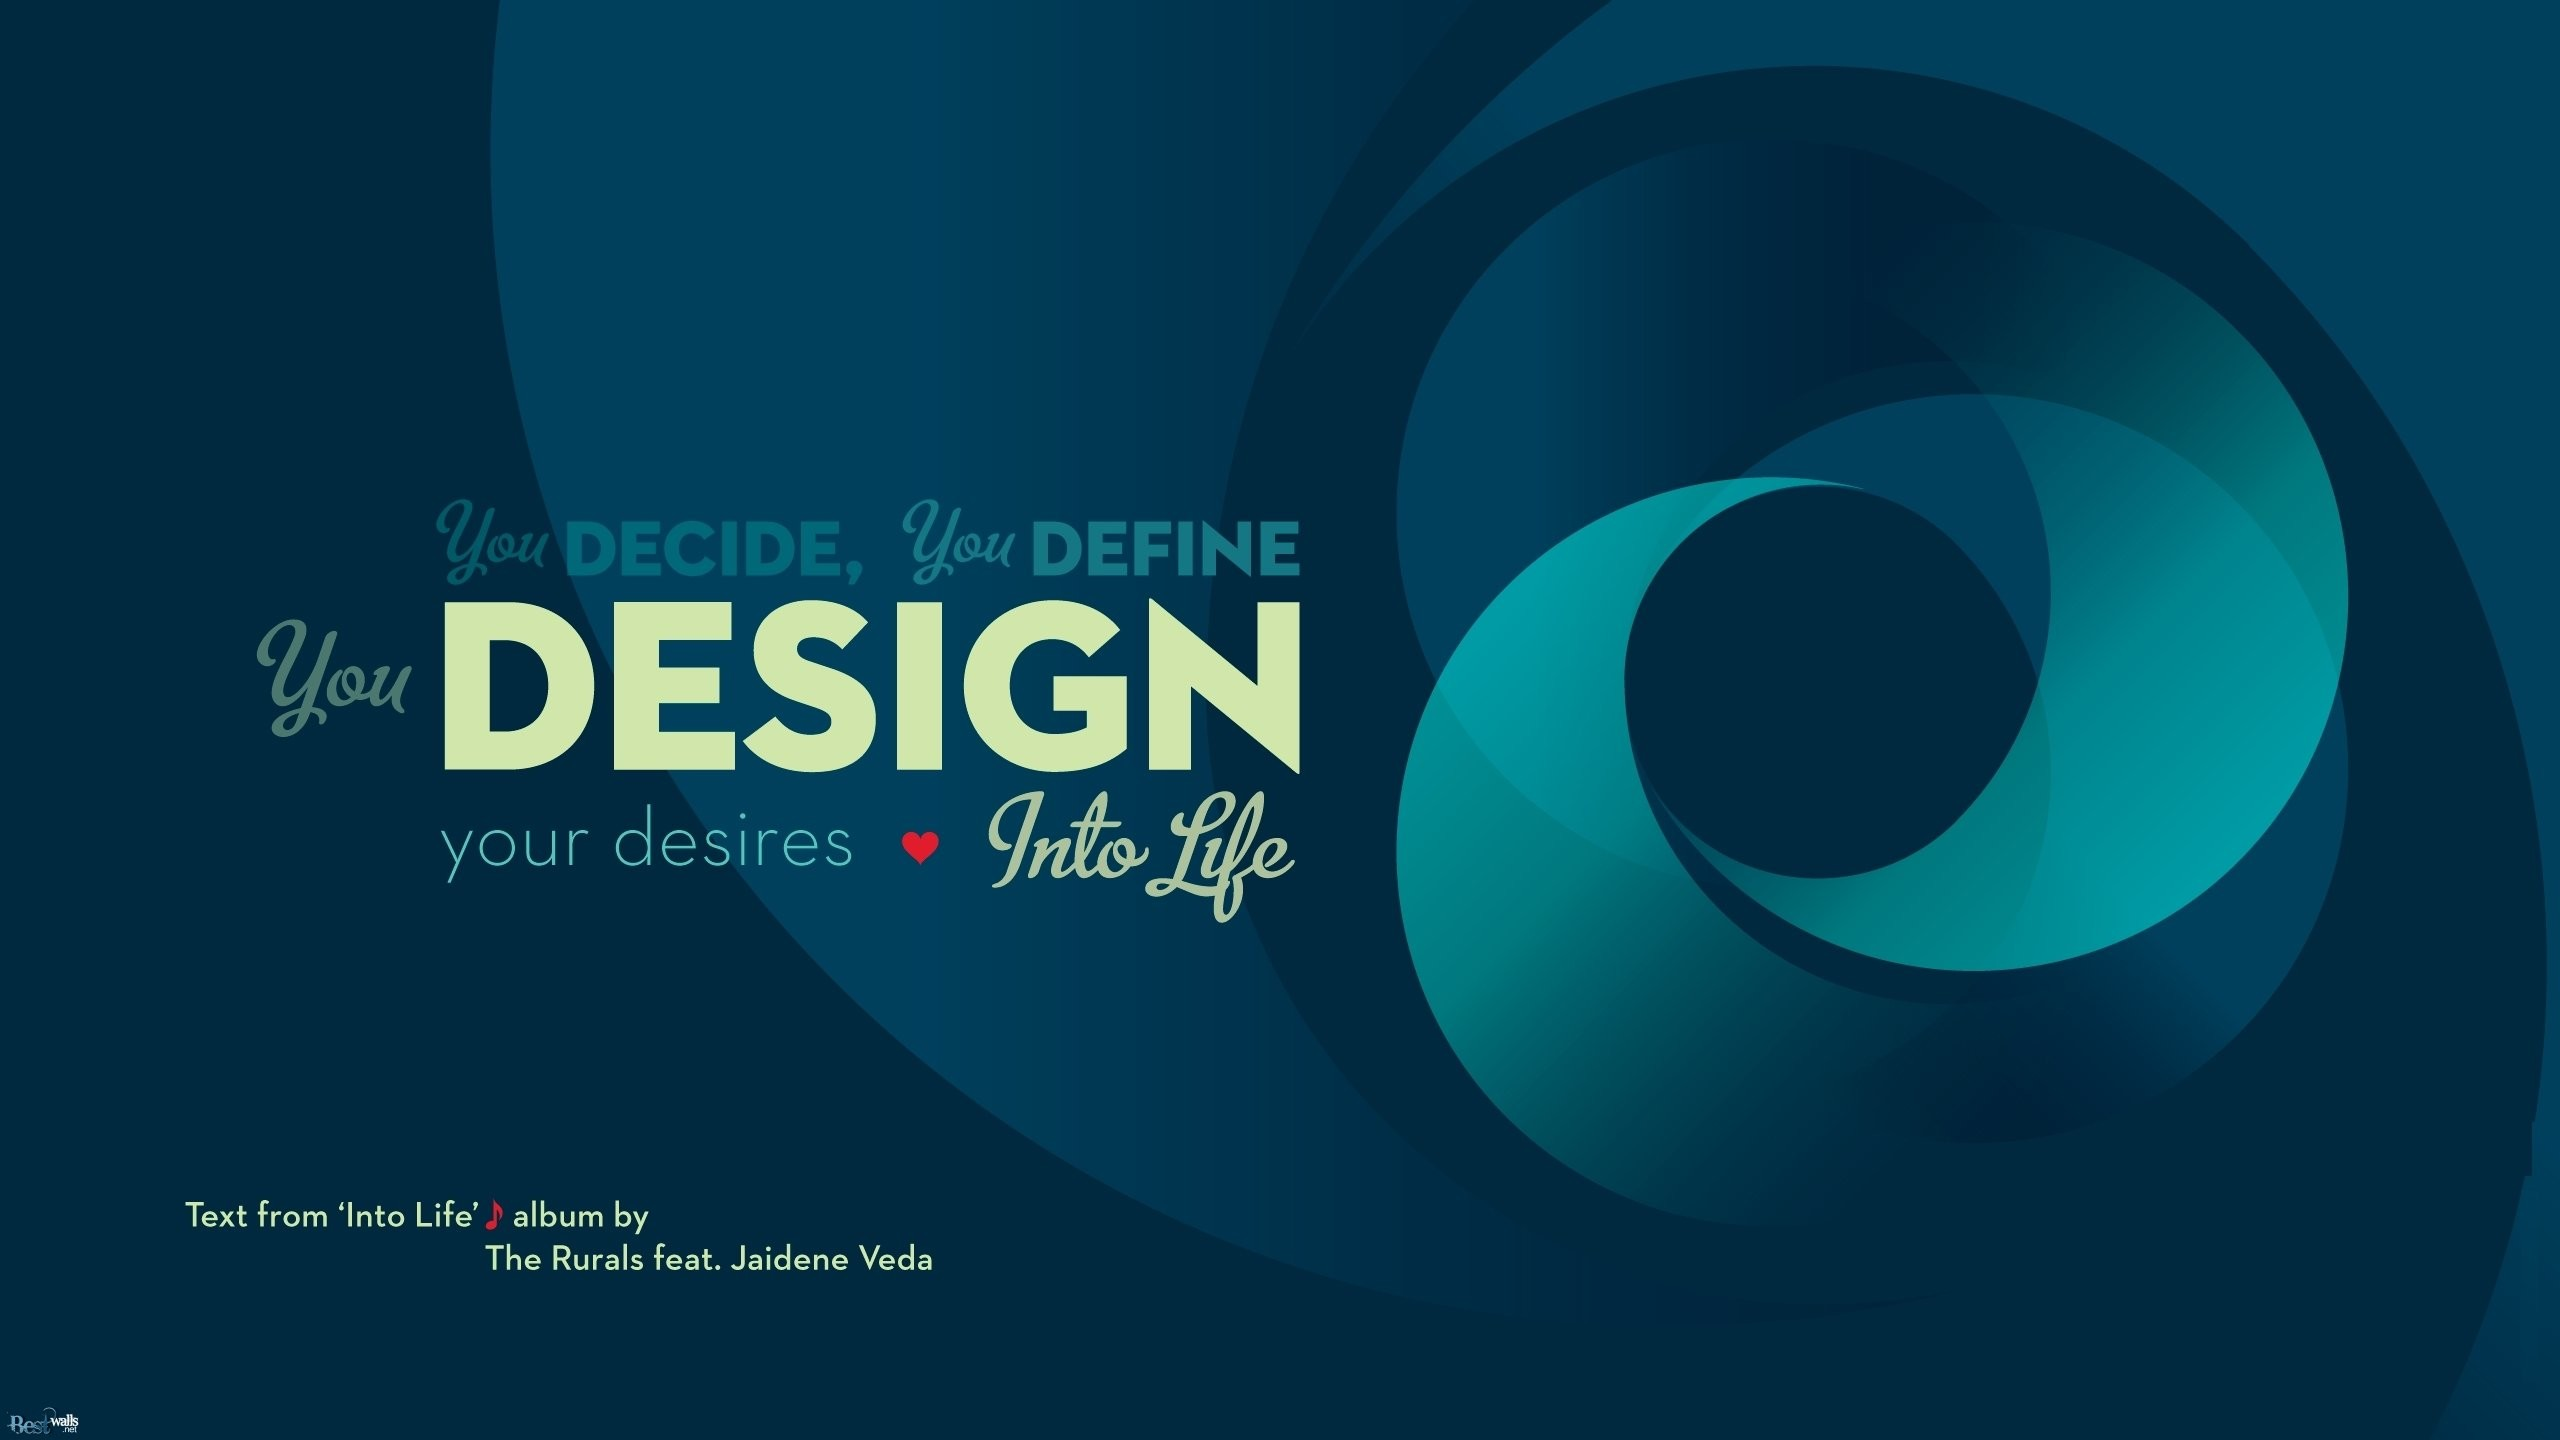 Cool Designs Backgrounds 63 Images